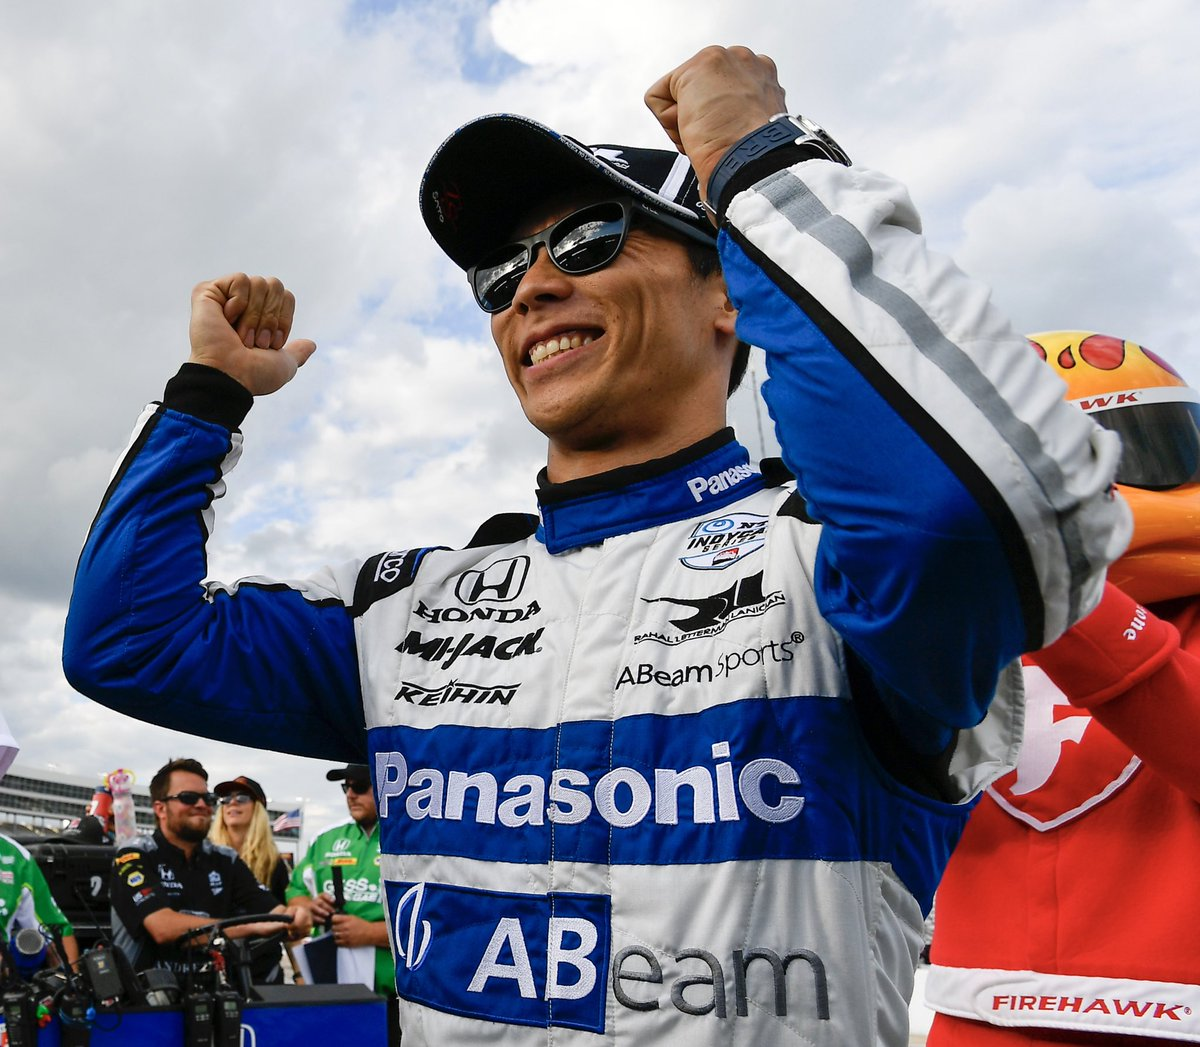 """I think that's an incredible achievement & it will be so tough to repeat but it's really great that the team has such chemistry at #LagunaSeca. We all feel very positive to go there knowing the team's great history there."" — @TakumaSatoRacer on @BobRahal's 4 Laguna Seca 🏎 wins"